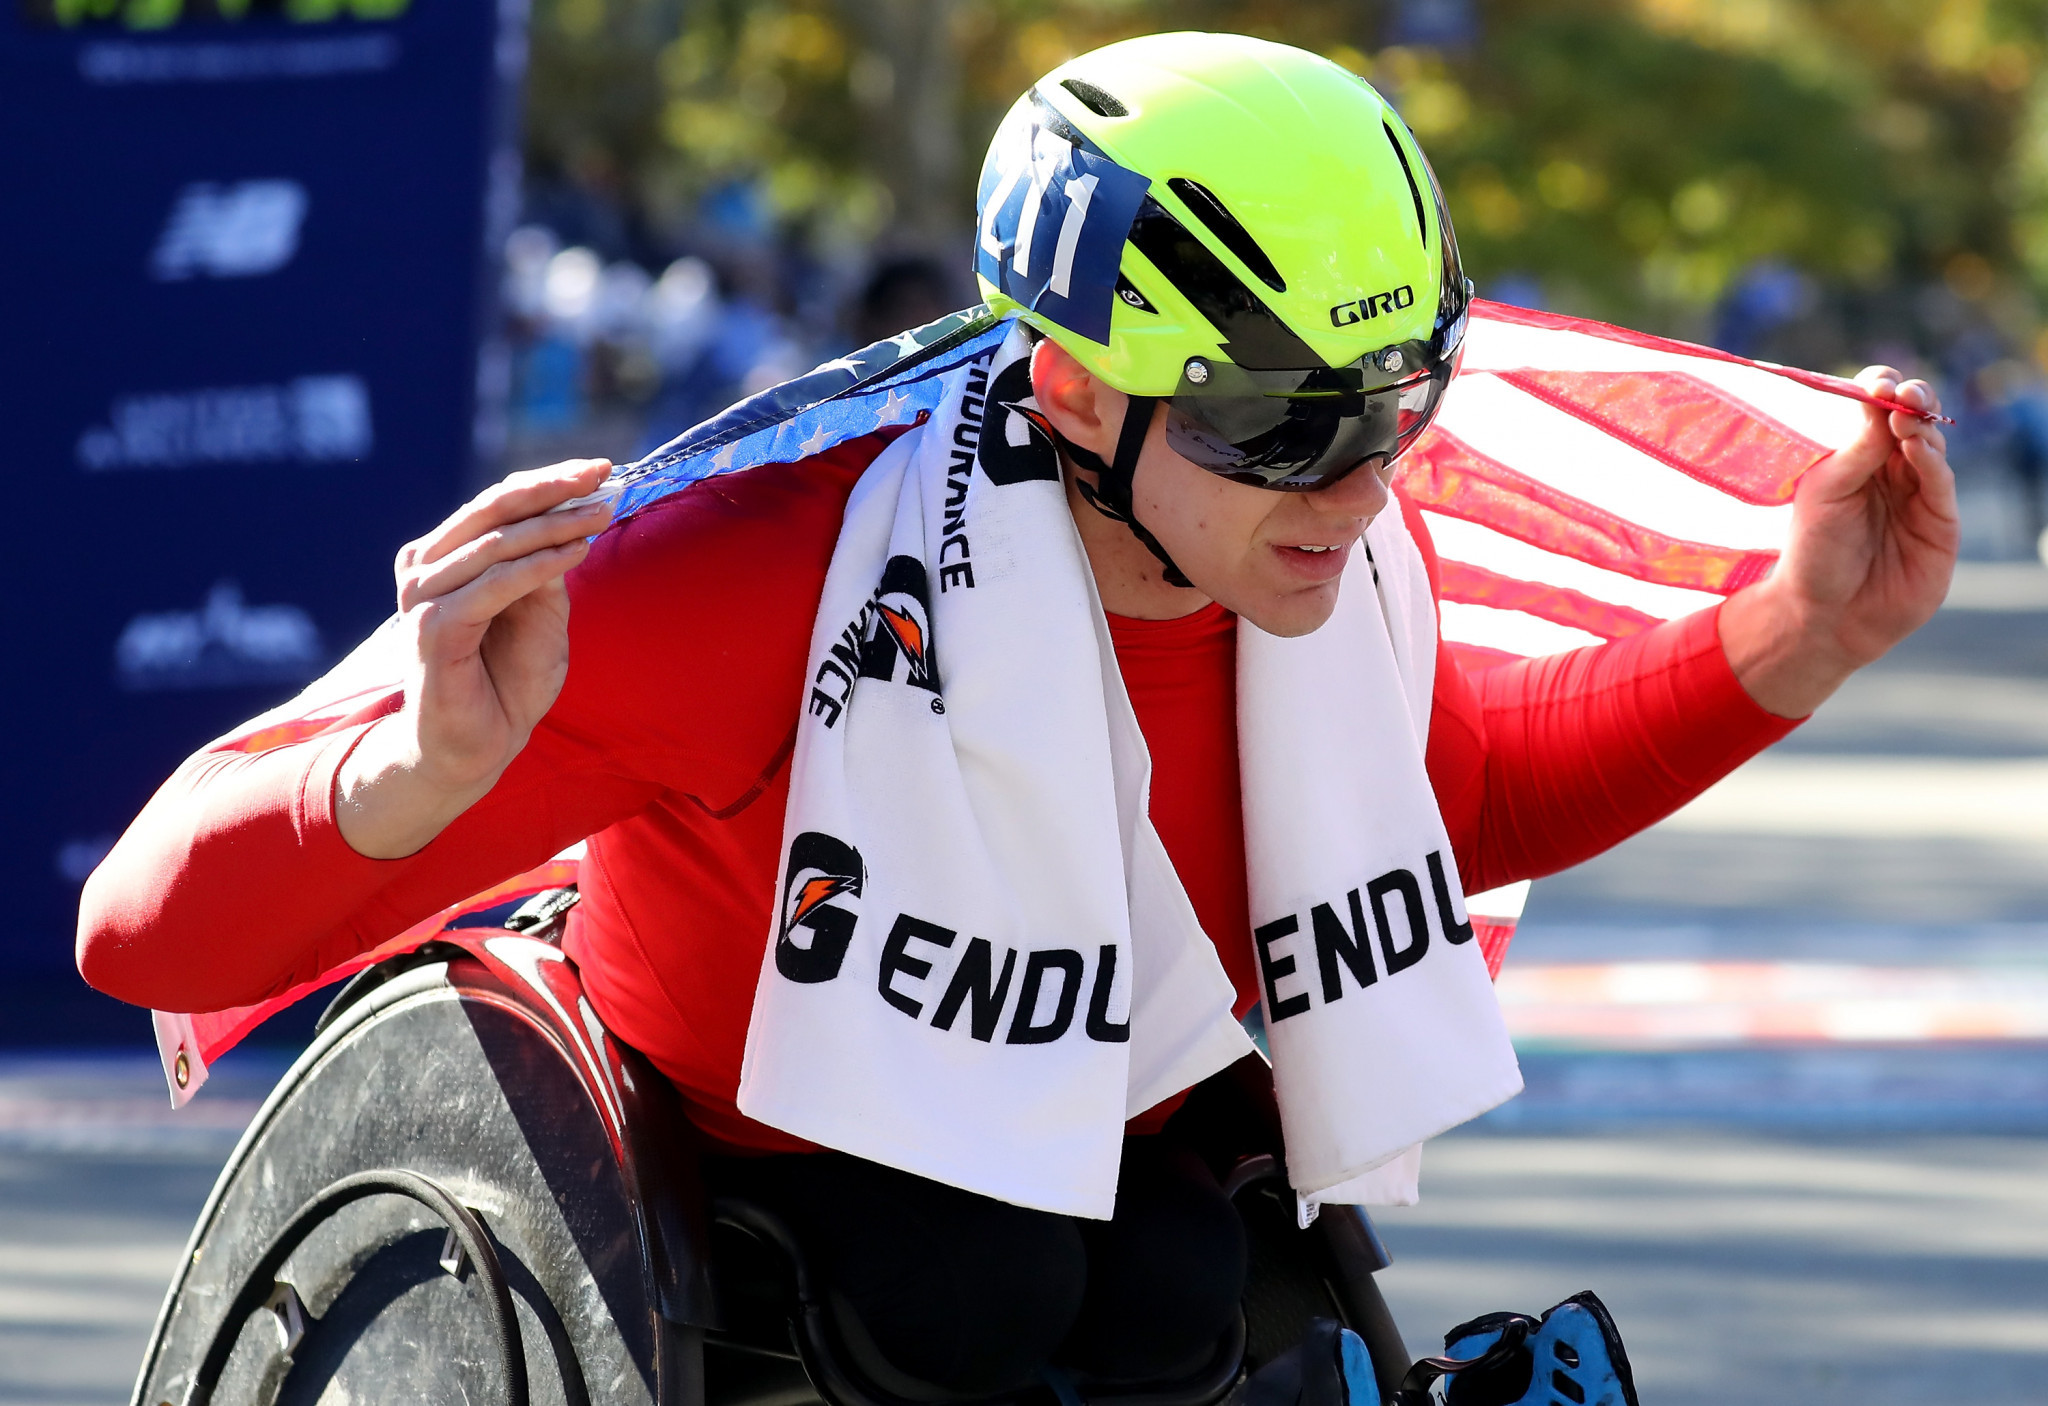 Romanchuk becomes first-ever American to win men's wheelchair crown at New York City Marathon